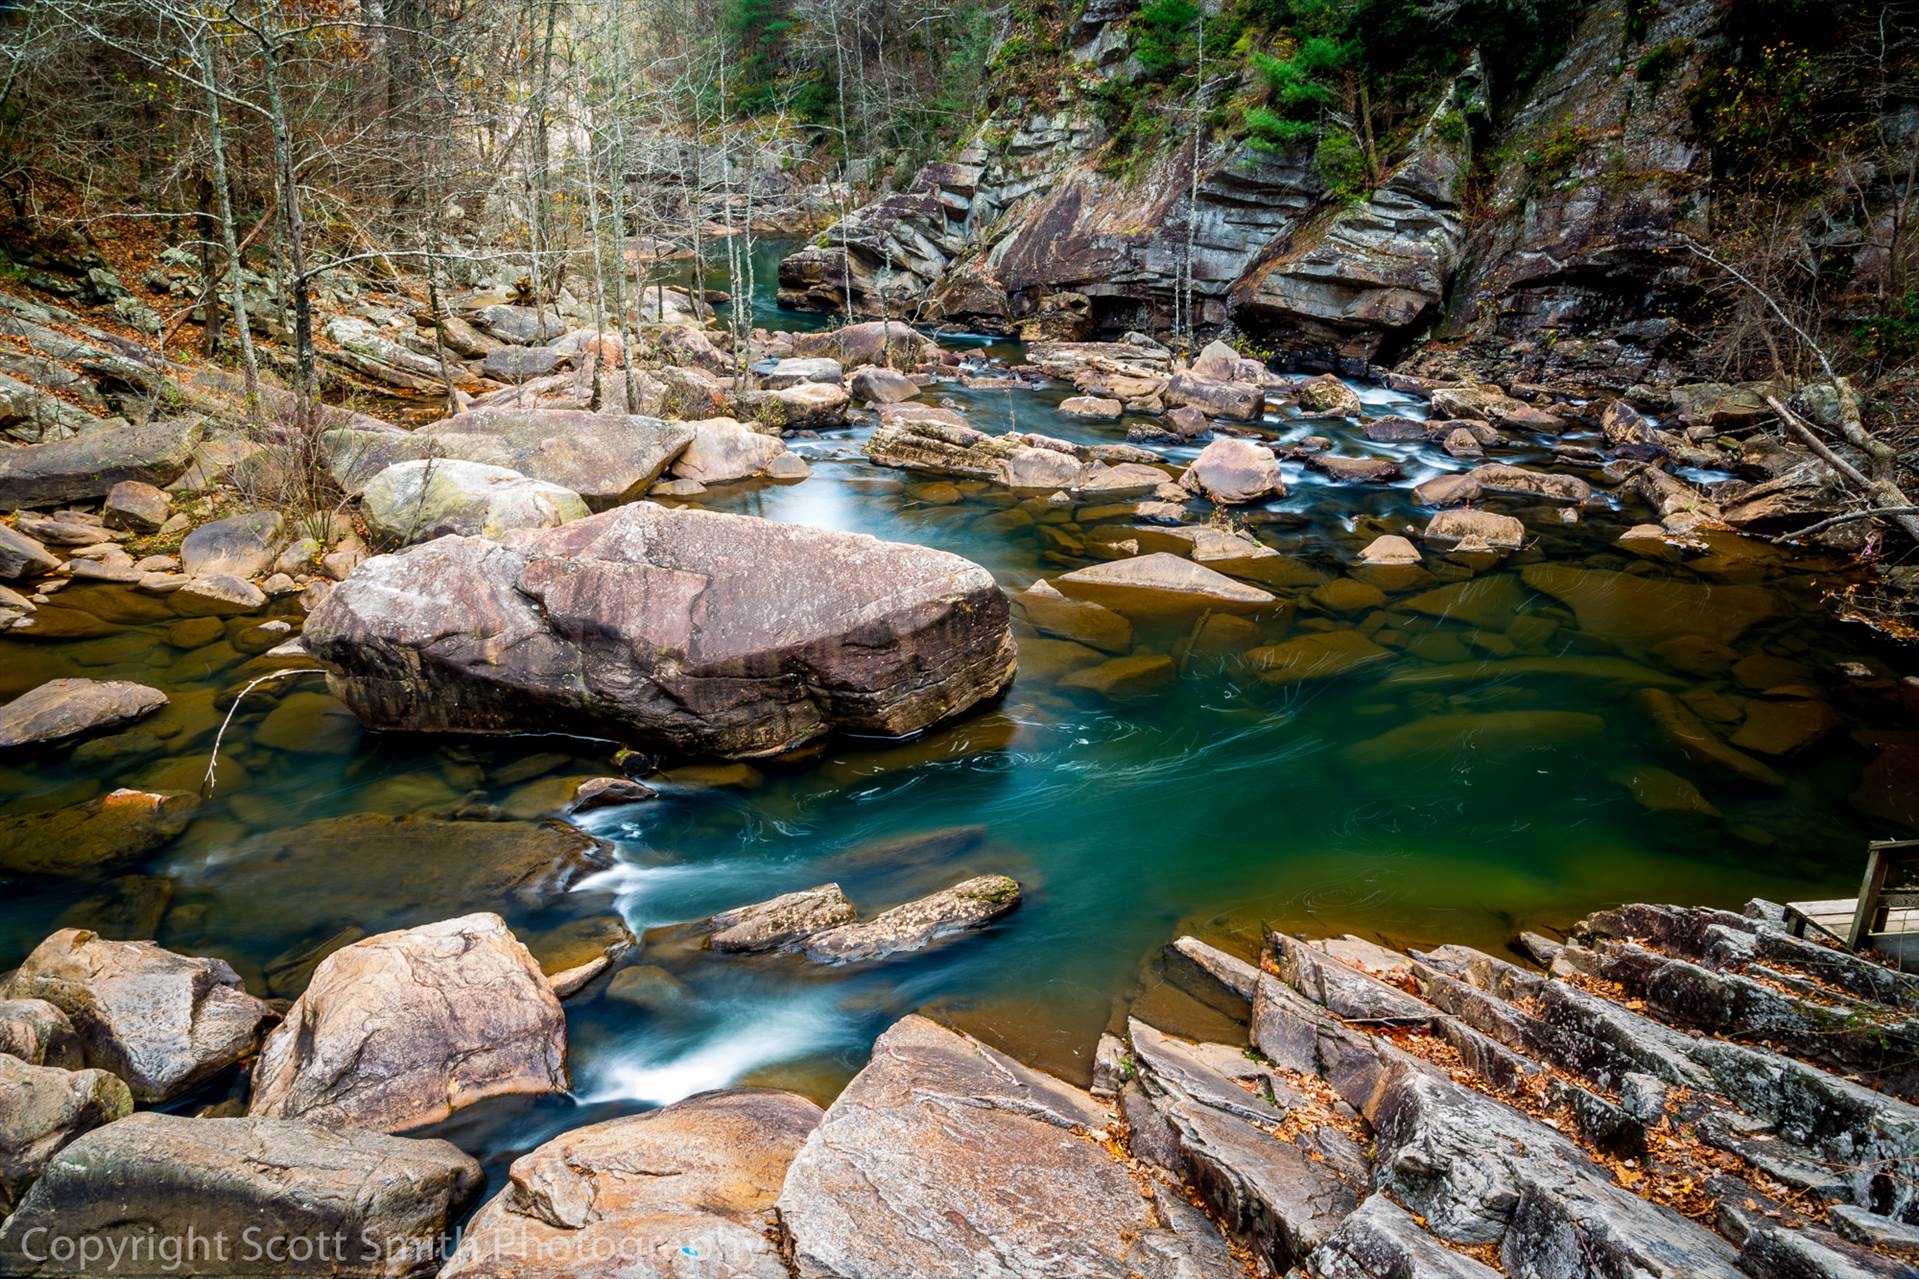 Tallulah Gorge - The beautiful emerald-green water at the bottom of Tallulah Gorge, Georgia. by D Scott Smith